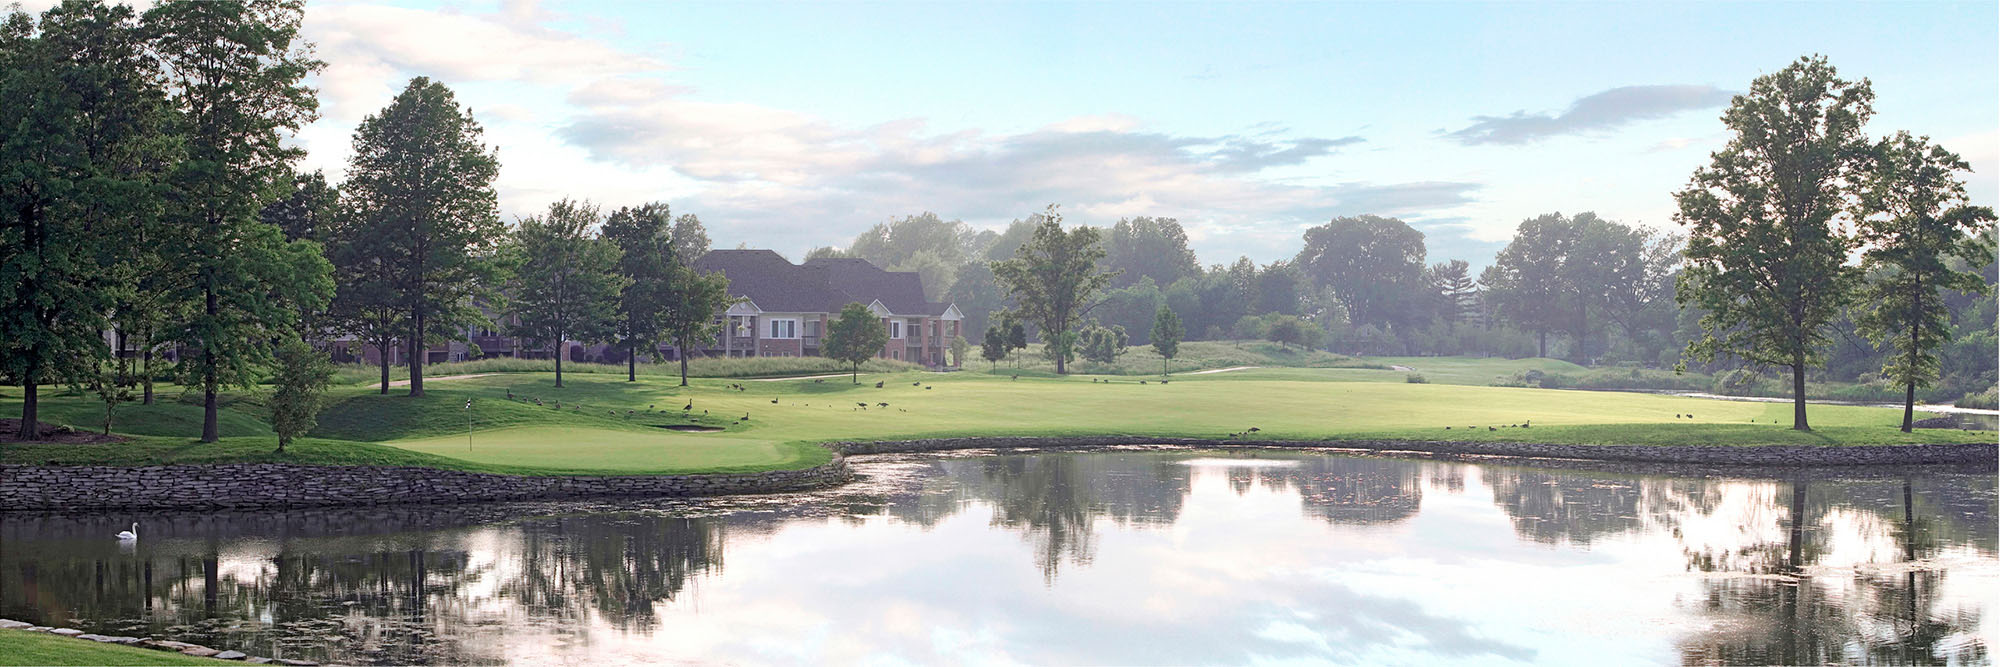 Golf Course Image - StoneWater Golf Club No. 7